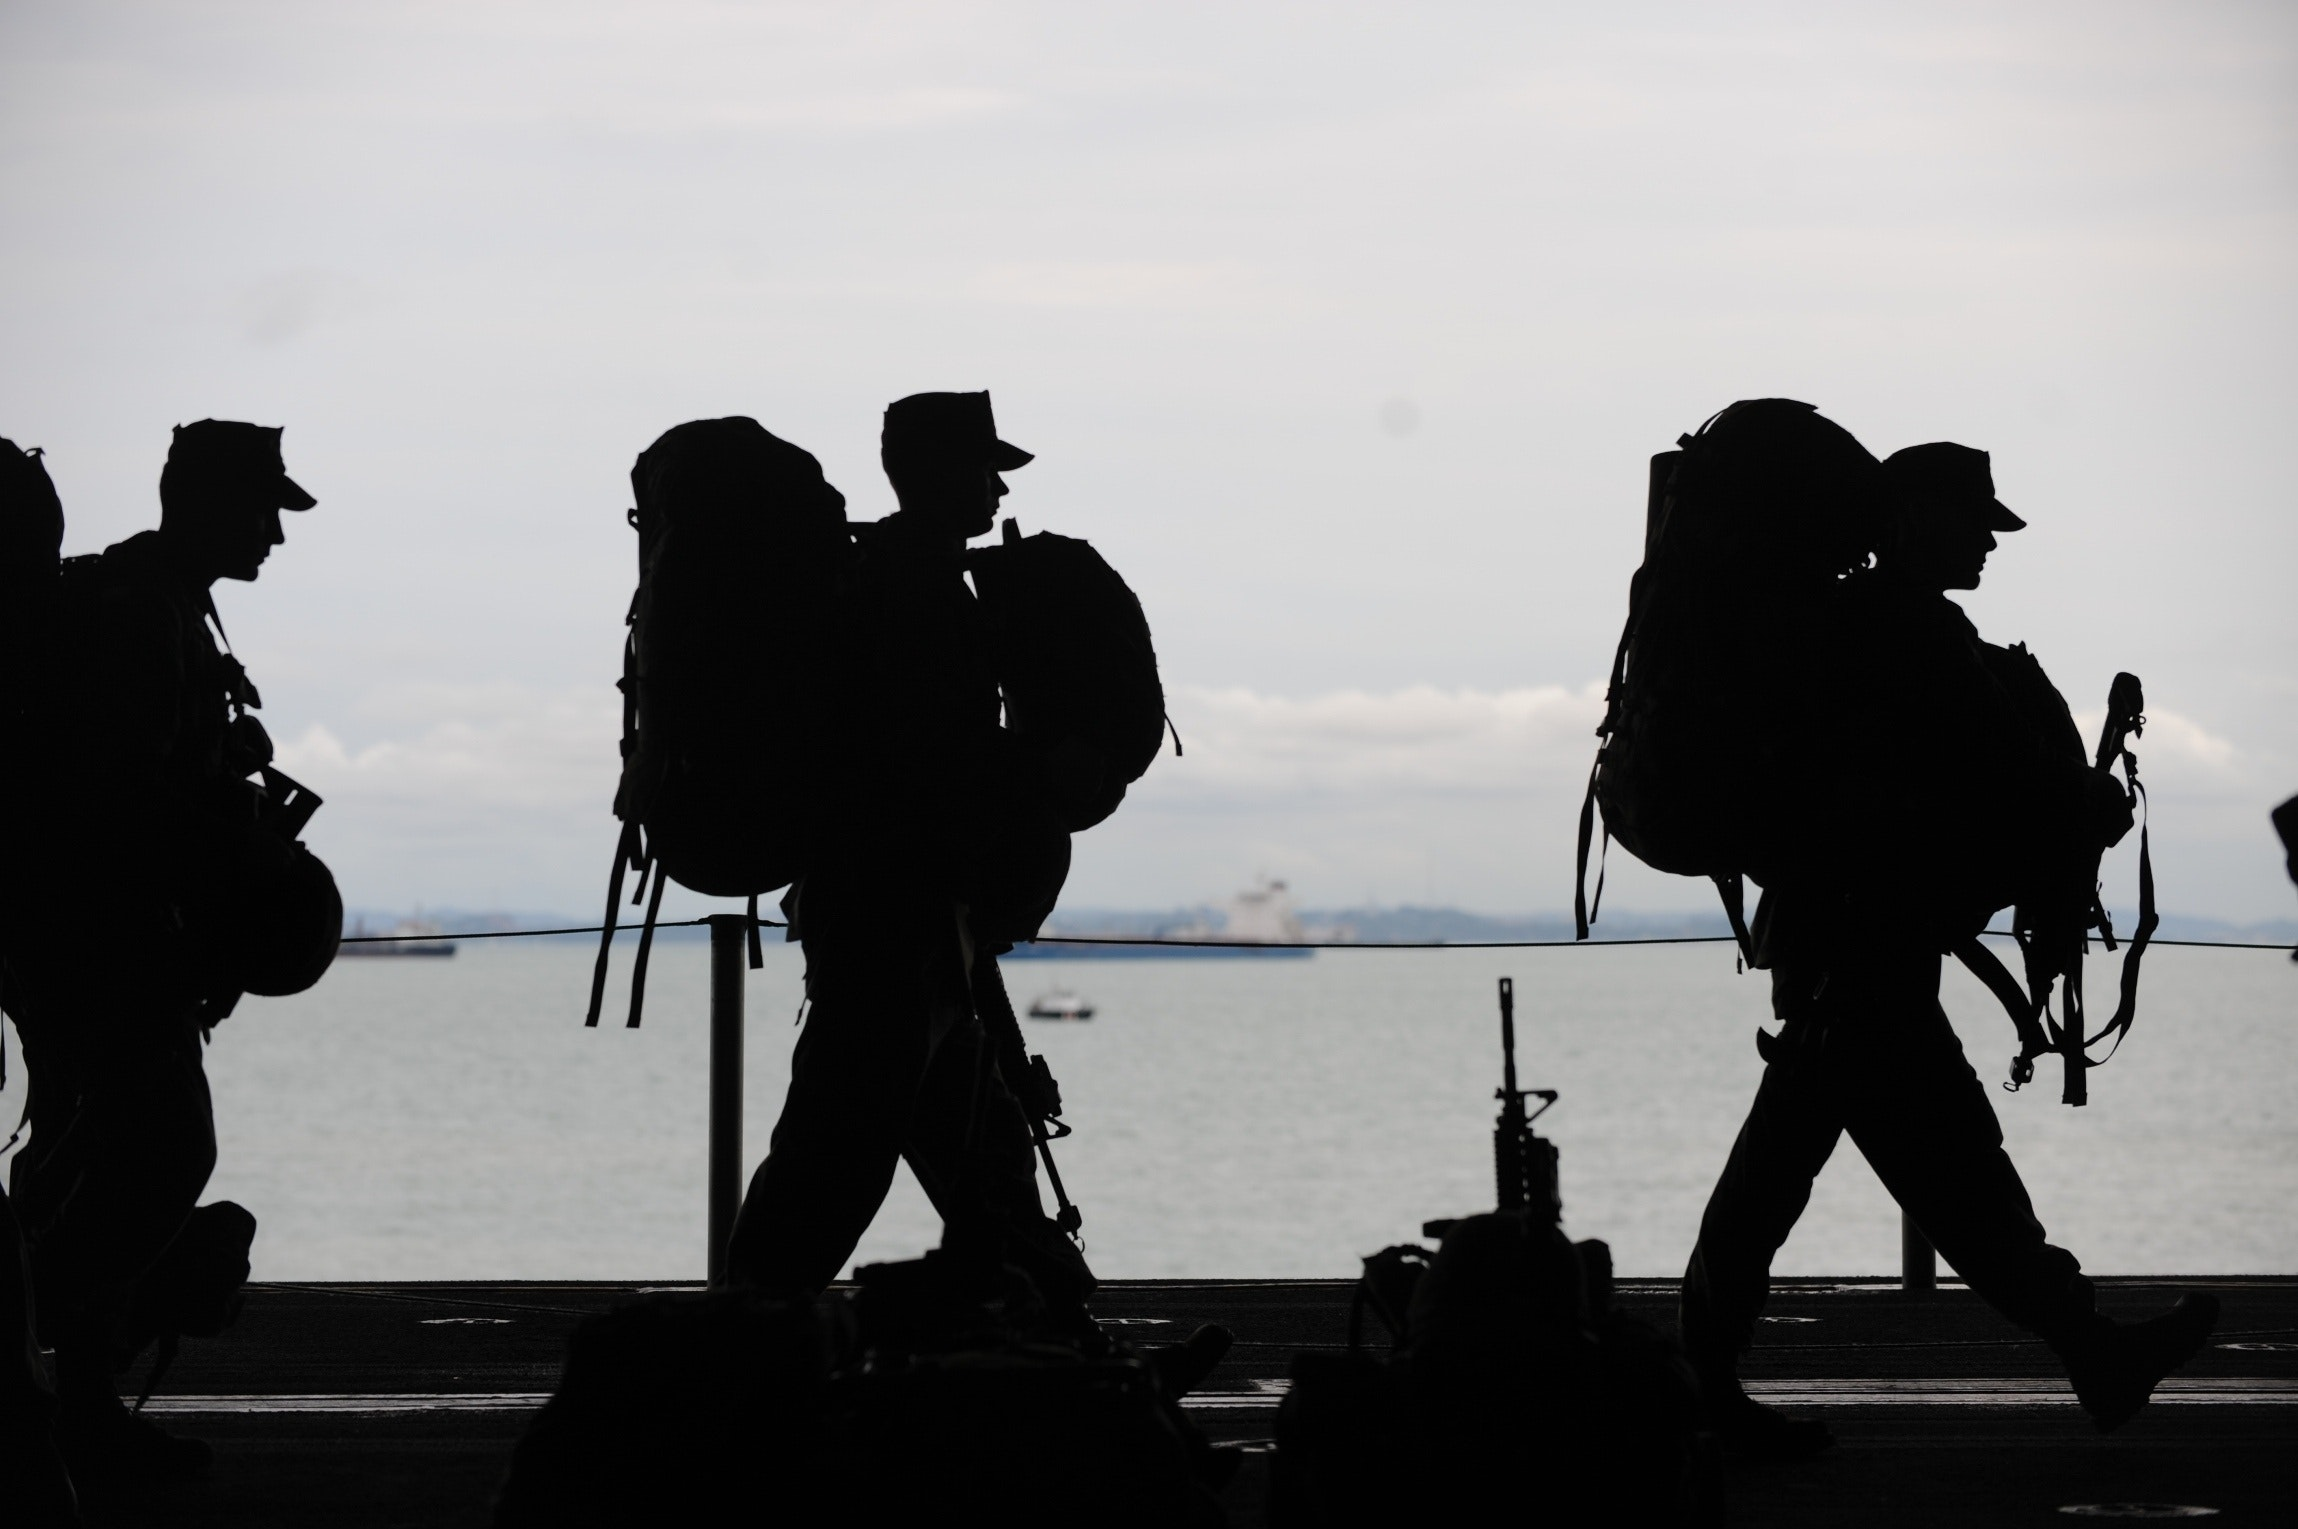 Military workers with travel gear walking in front of water